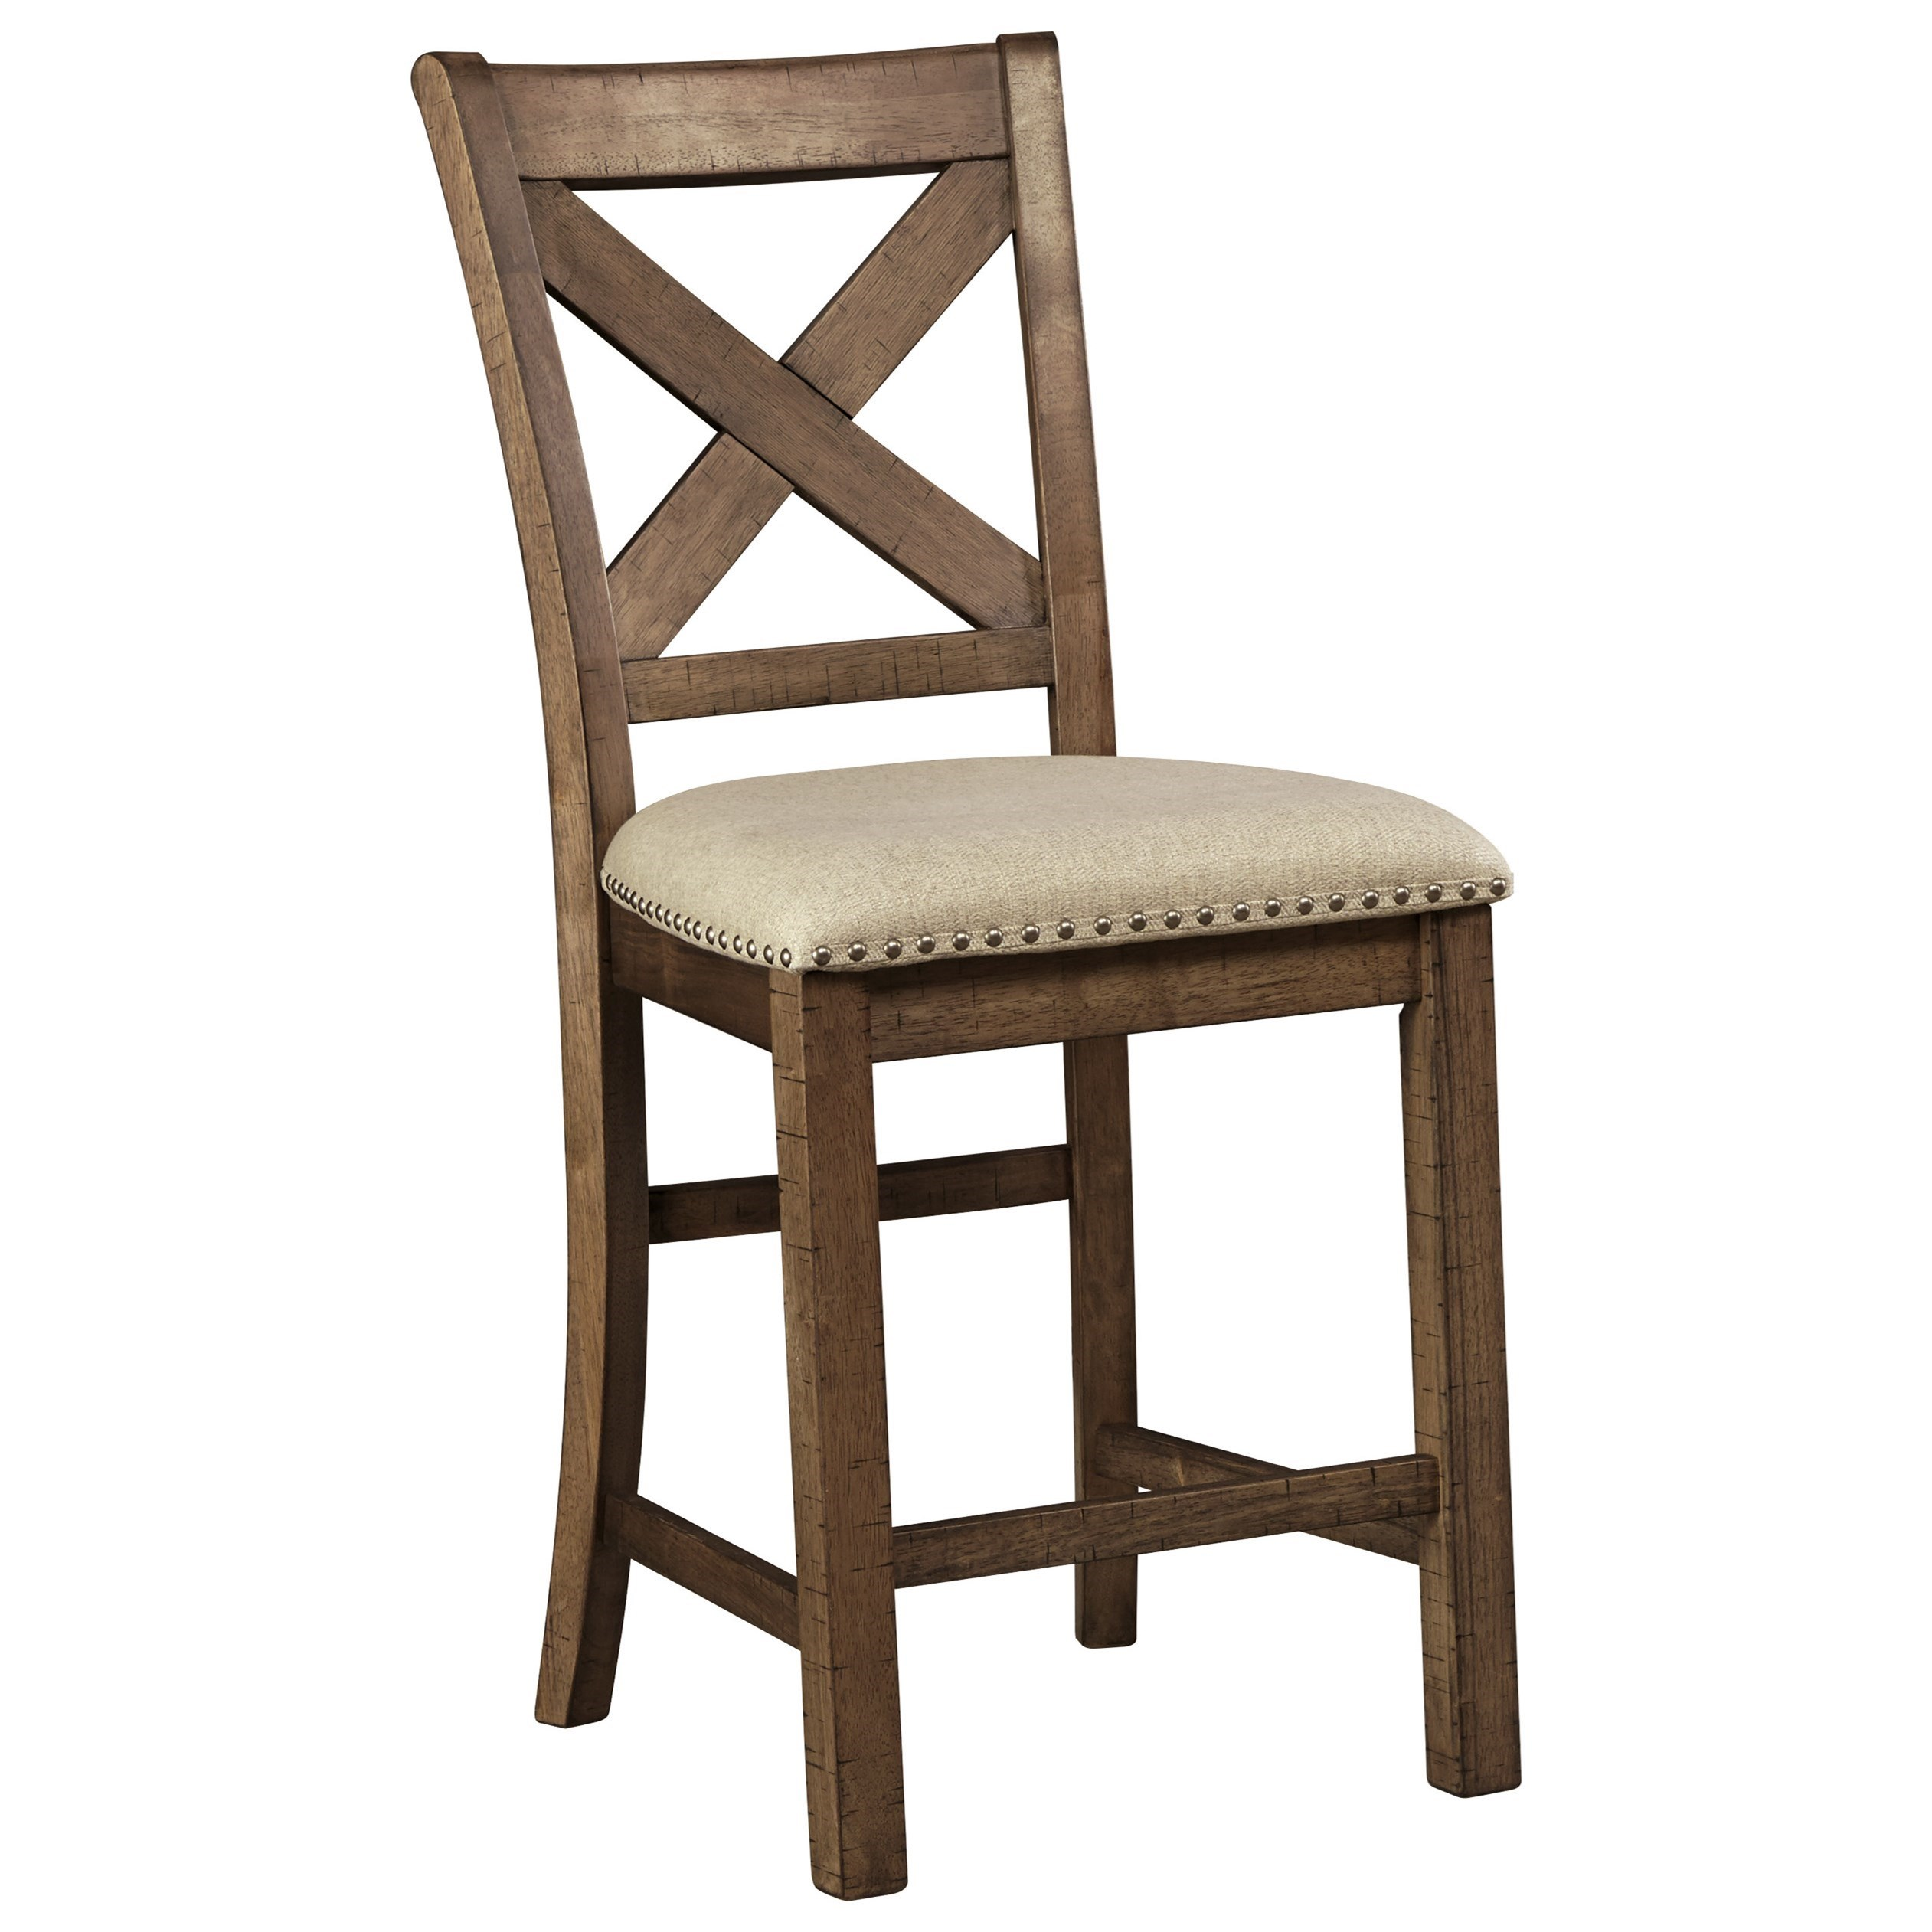 Moriville Upholstered Barstool by Signature Design by Ashley at Beck's Furniture